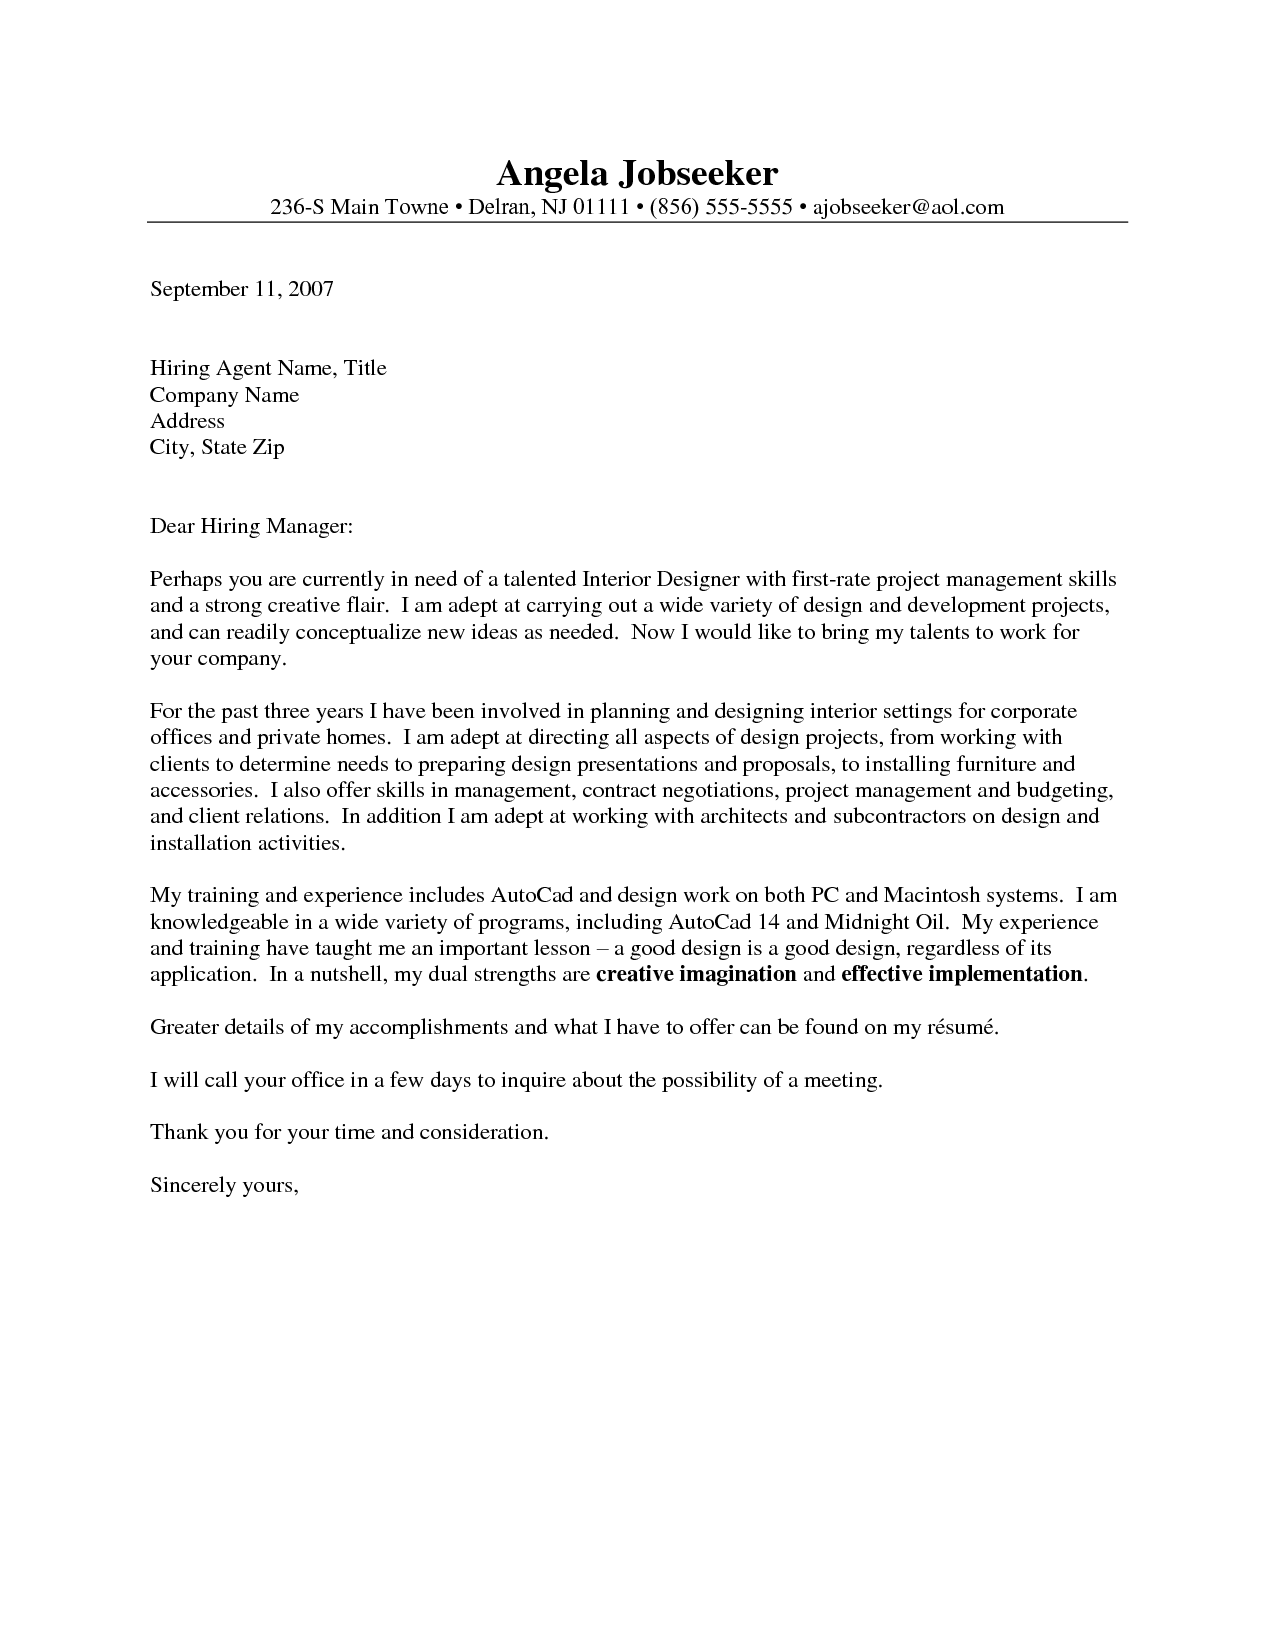 Whats Cover Letter Outstanding Cover Letter Examples  Interior Design Cover Letter